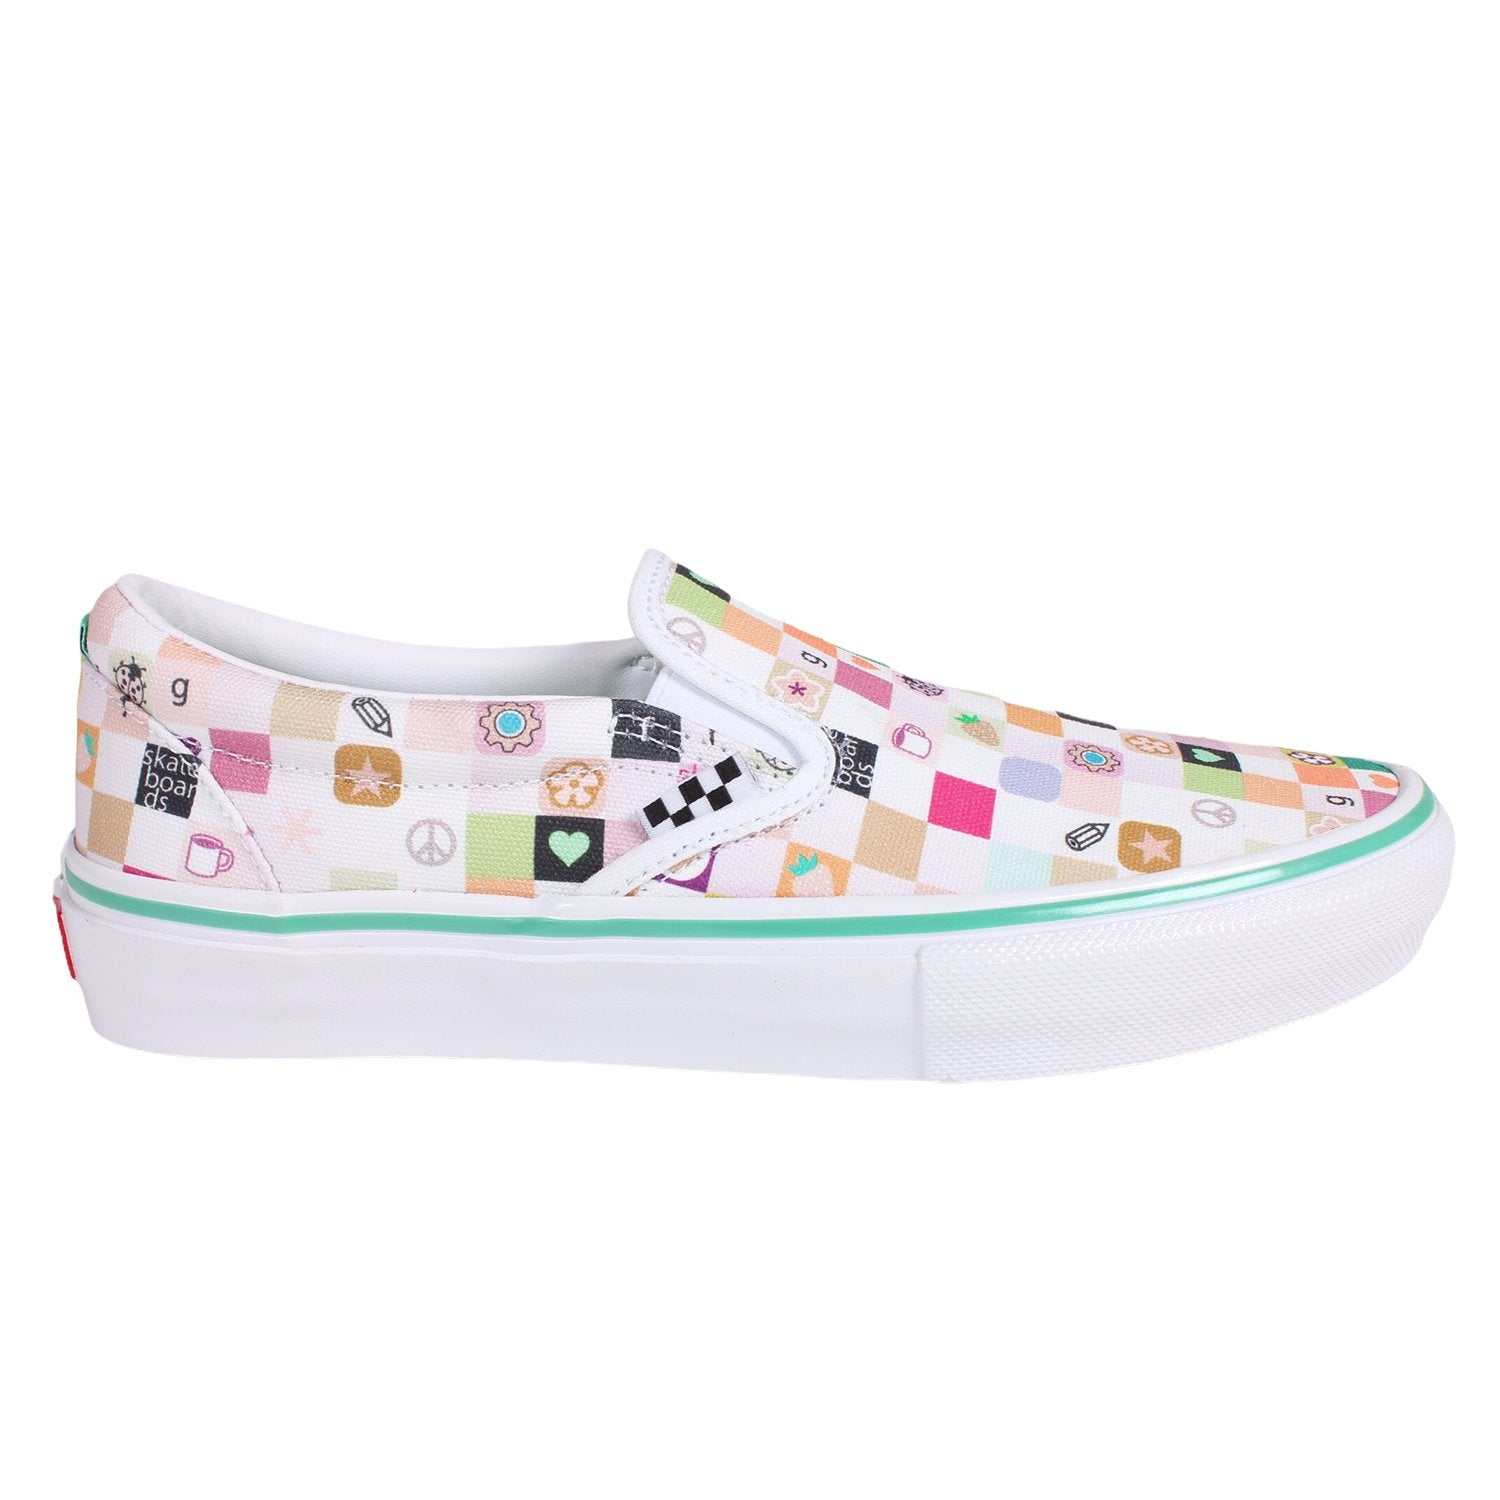 Vans Skate Slip On LTD Frog White/White